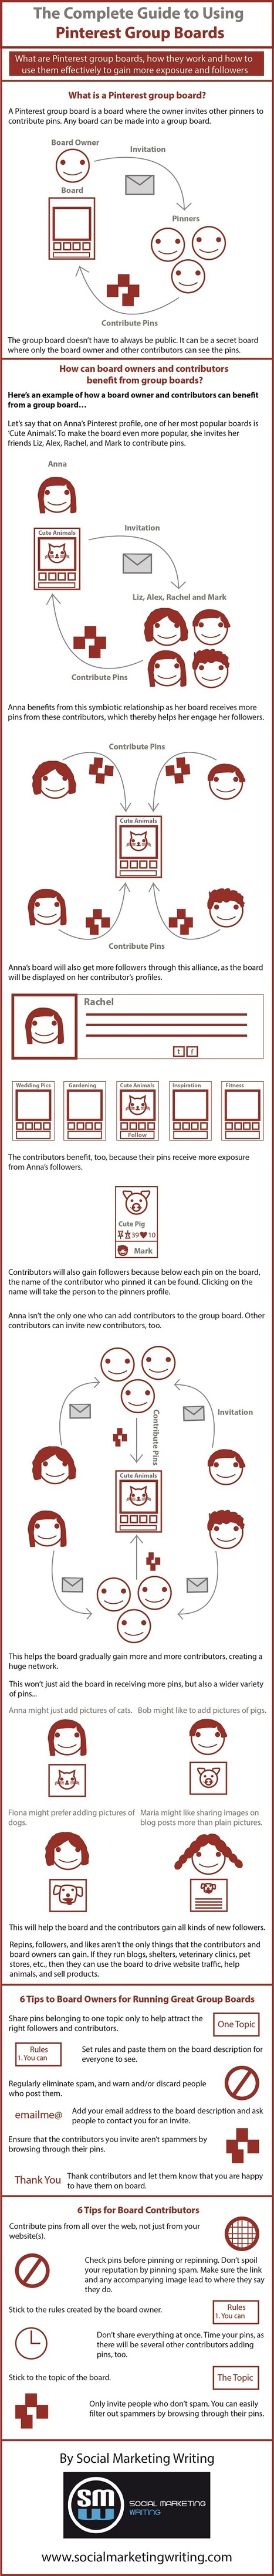 The Complete Guide to Pinterest Group Boards [Infographic] - Business 2 Community | Better know and better use Social Media today (facebook, twitter...) | Scoop.it